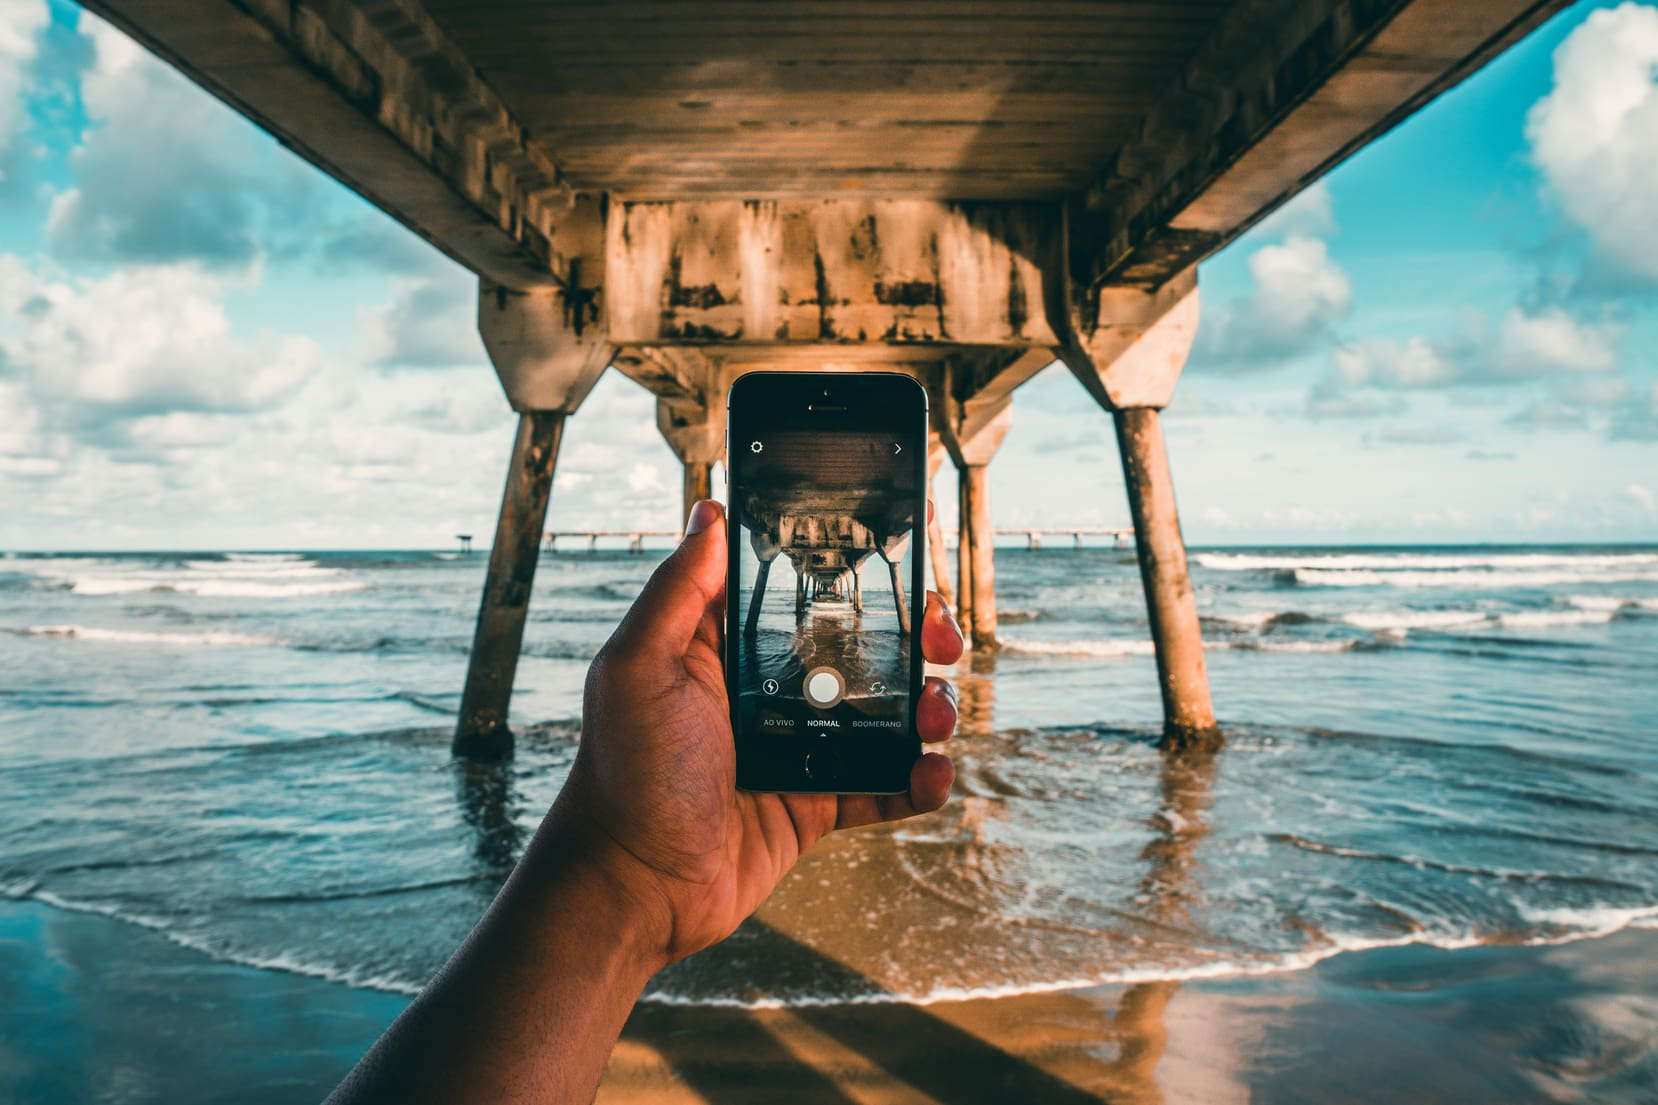 Jazz up your Instagram profile with these 5 easy-to-use editing apps